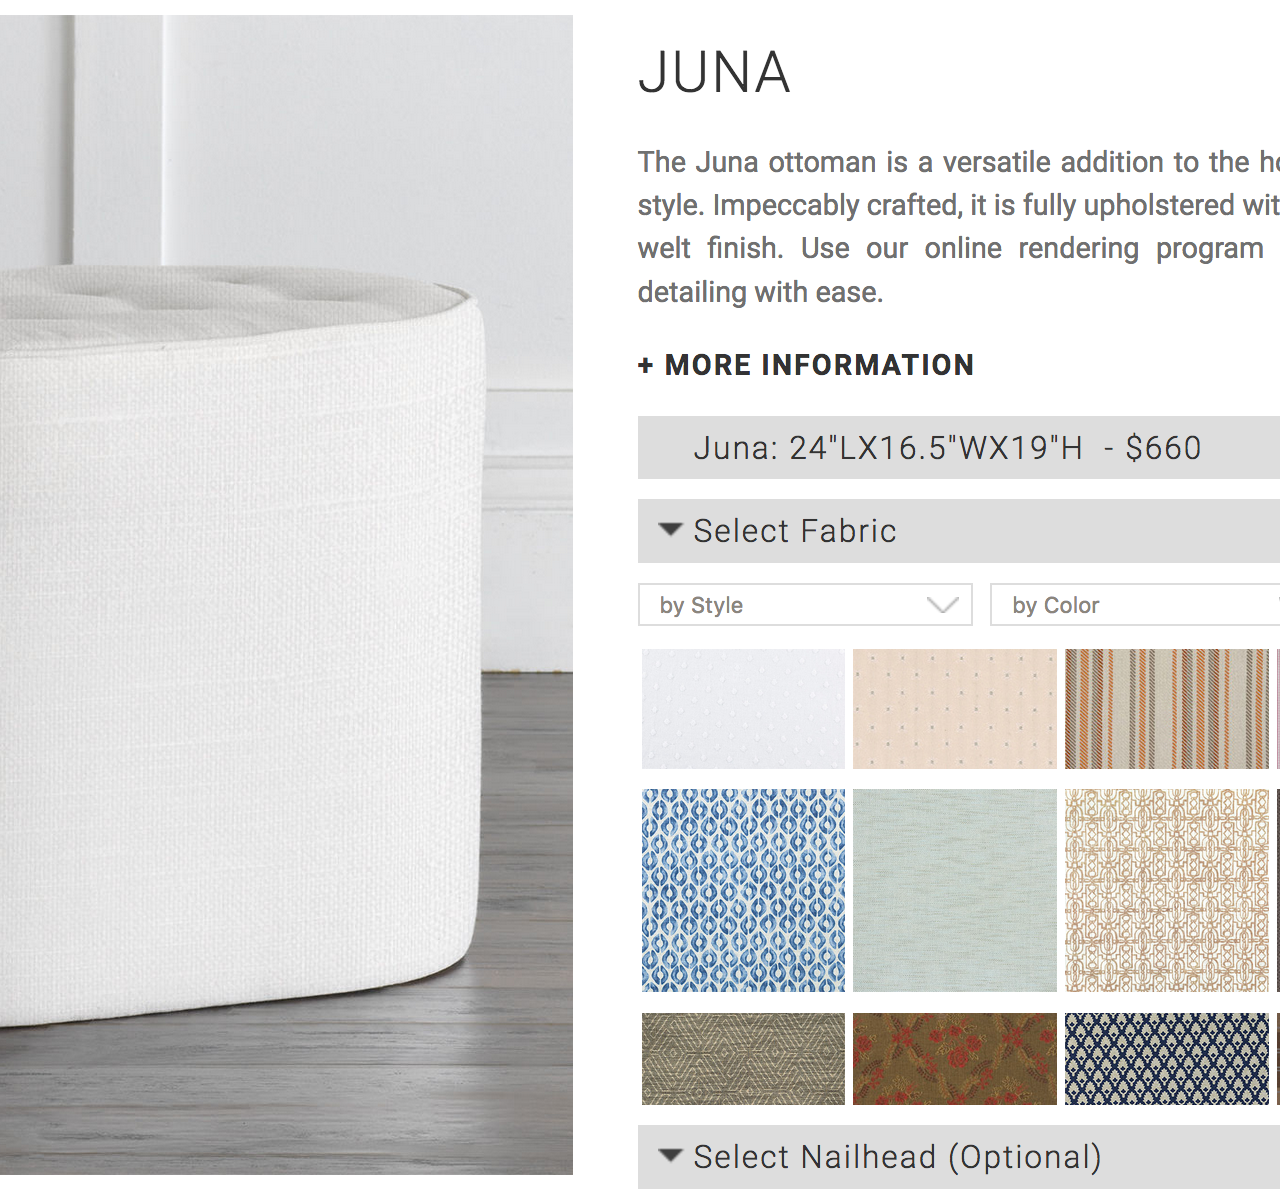 Basic: Juna before getting the custom treatment, shown without additional fabric or decorative options.